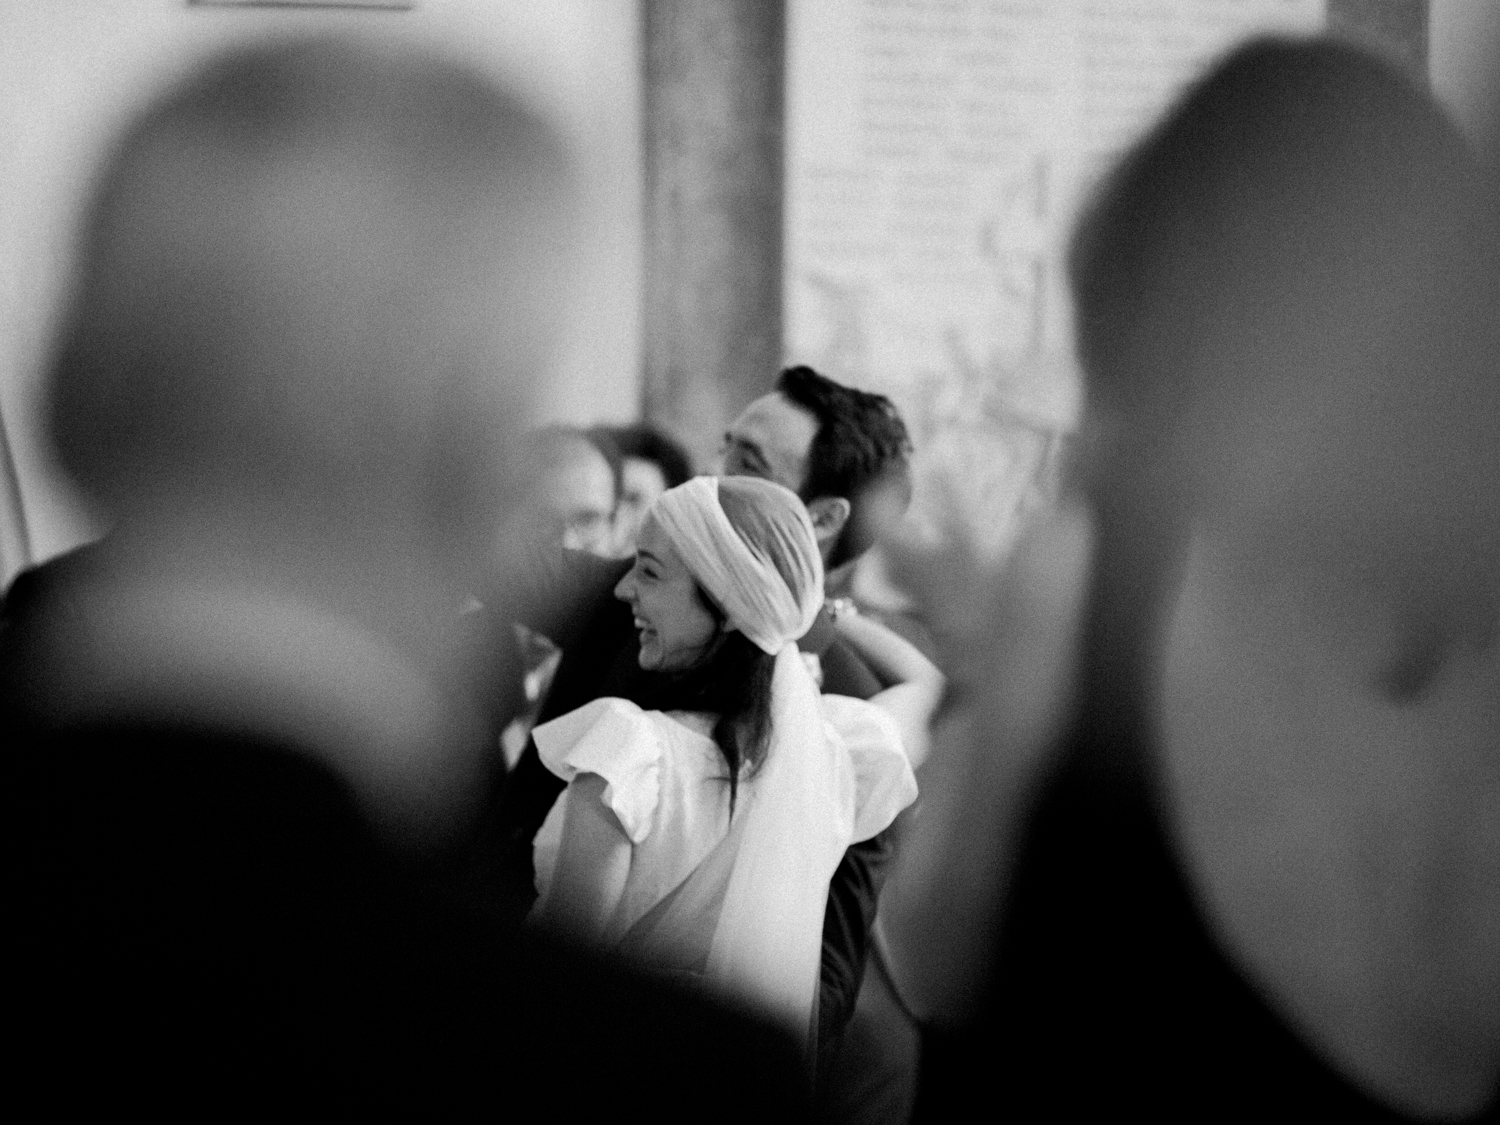 capyture-wedding-photographer-destination-mariage-bourgogne-497